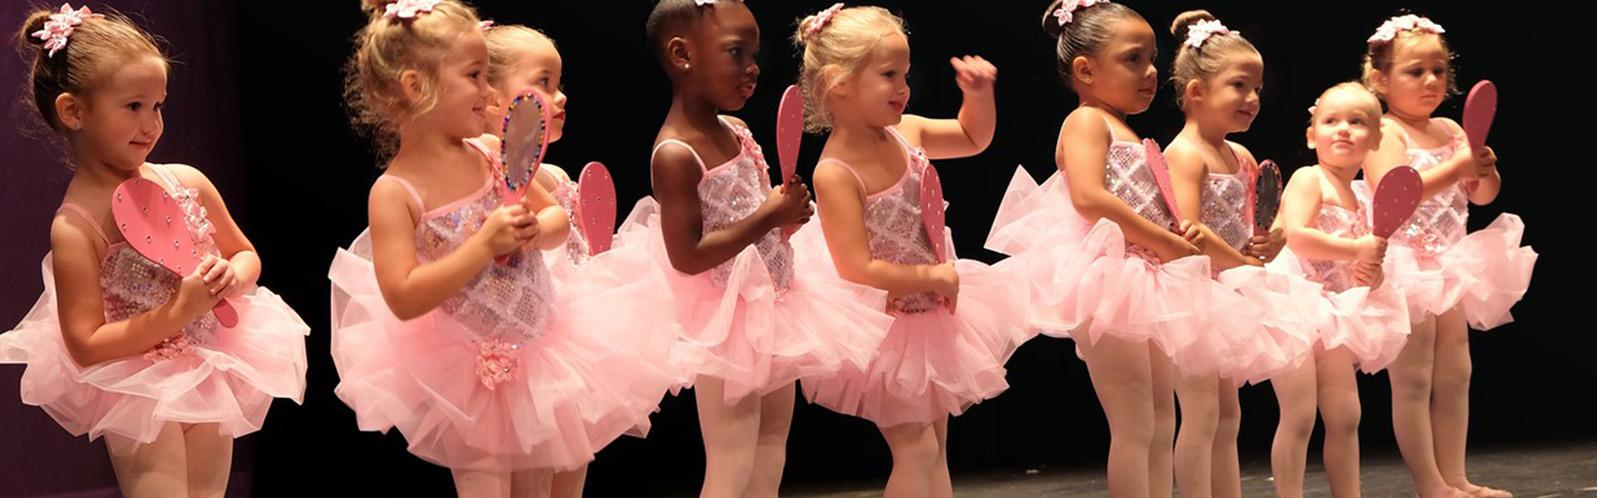 girl ballerinas